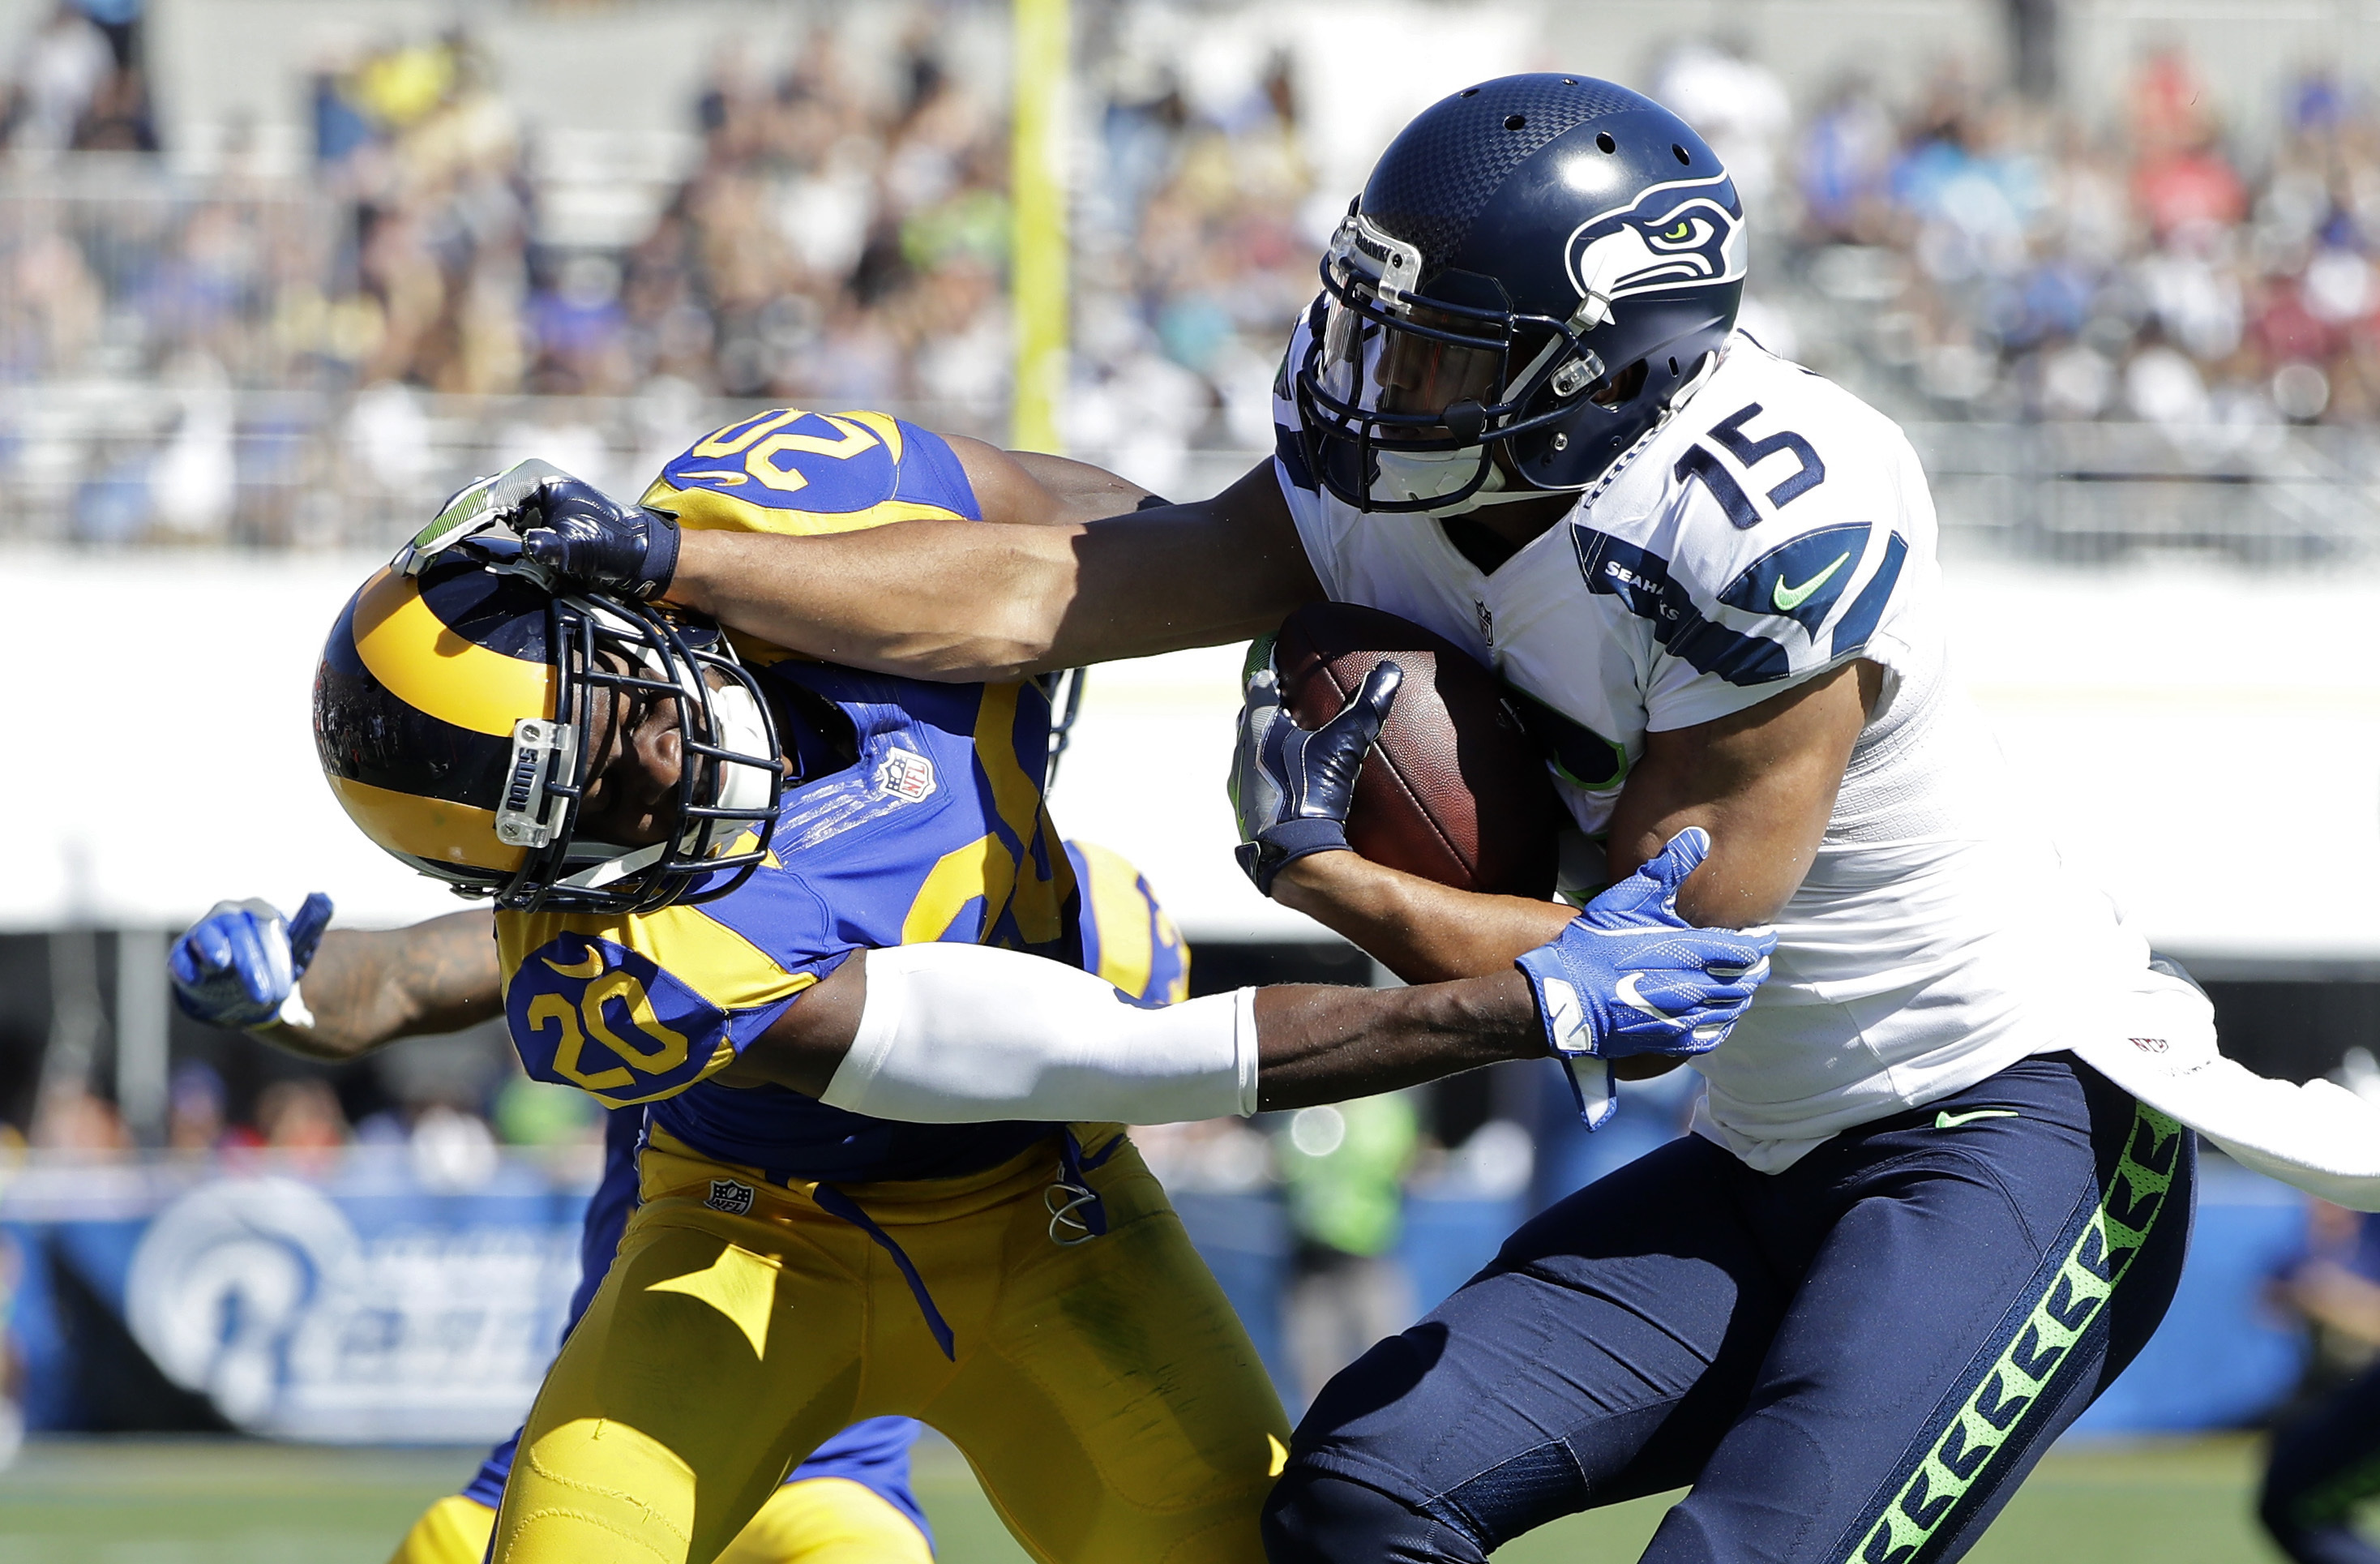 Seattle Seahawks wide receiver Jermaine Kearse, right, pushes Los Angeles Rams cornerback Lamarcus Joyner away as he runs the ball during the second half of an NFL football game at the Los Angeles Memorial Coliseum, Sunday, Sept. 18, 2016, in Los Angeles.